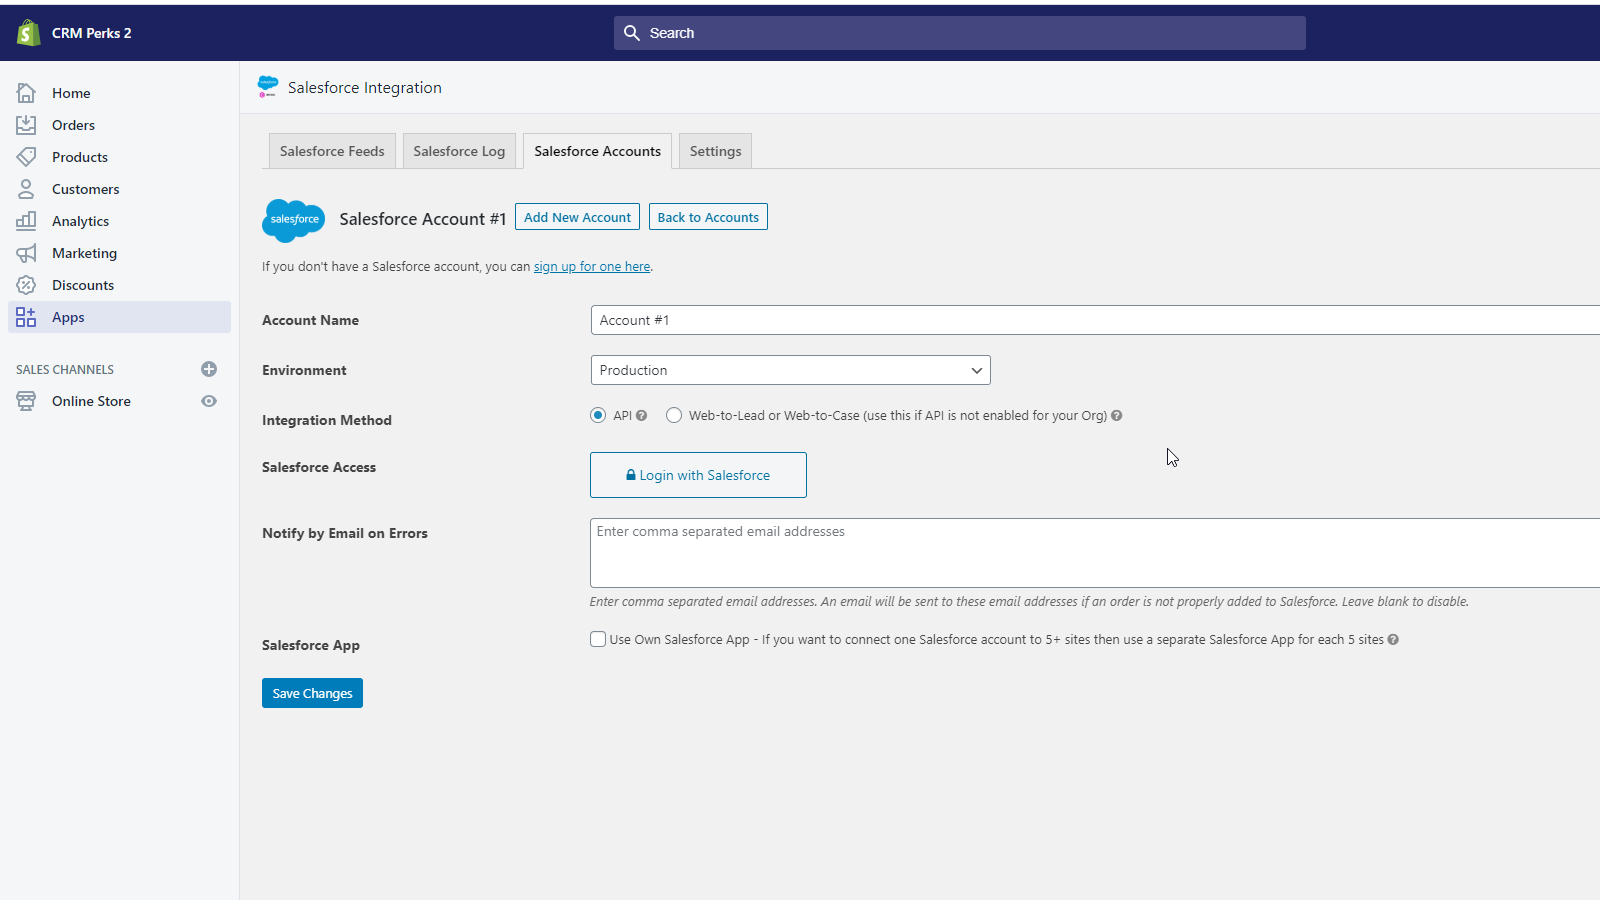 Connect Salesforce Account